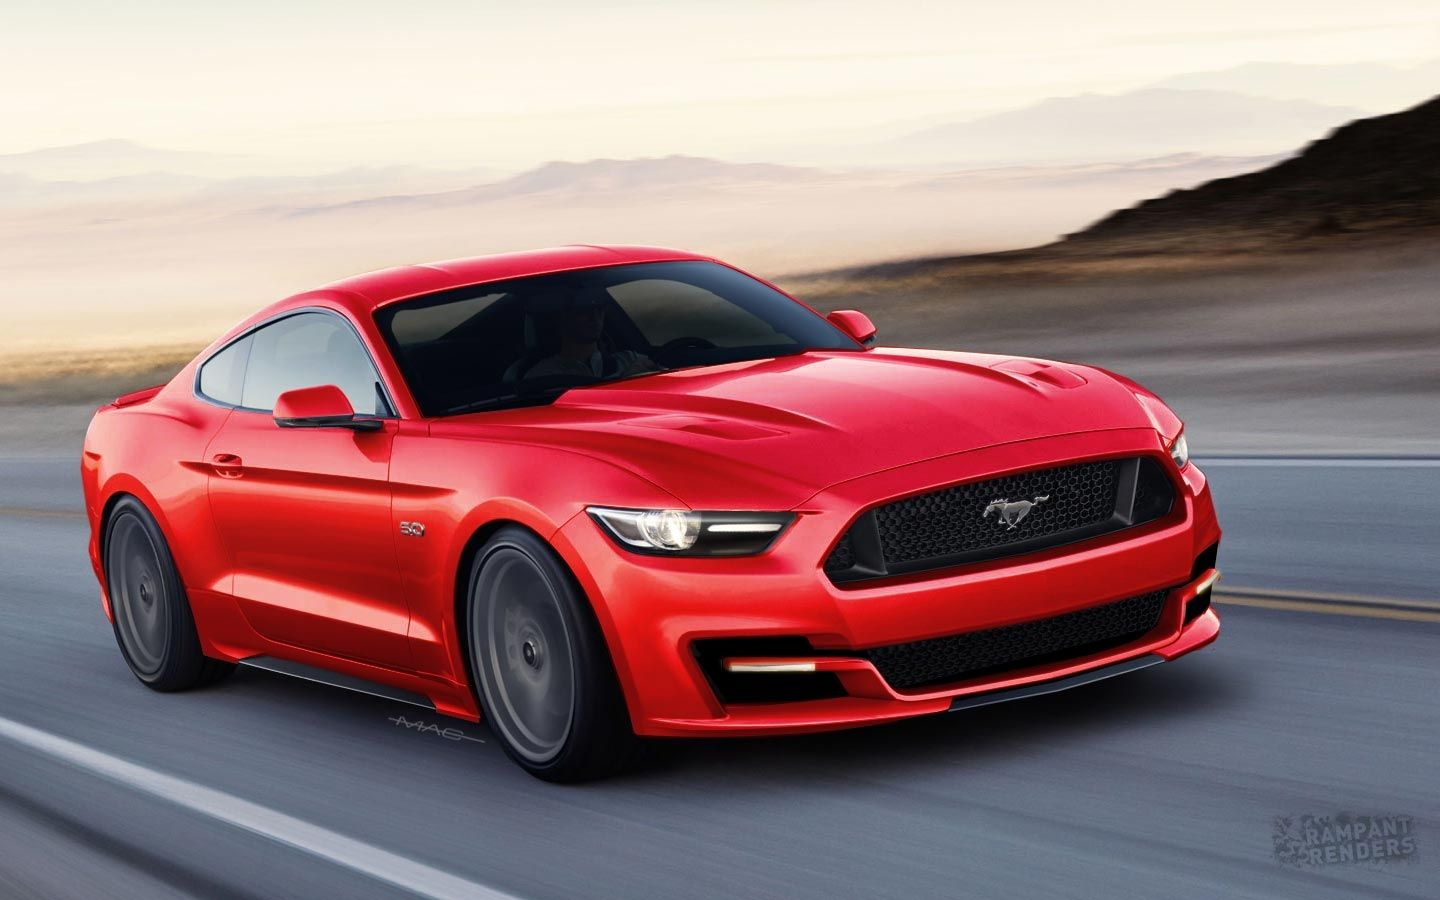 Ford Mustang 2015 Wallpapers 2015 Mustang Gt Wallpapers Wallpaper Cave For Ford Mustang 2015 Wallpapers 1440 X 900 2015 Ford Mustang Mustang Ford Mustang